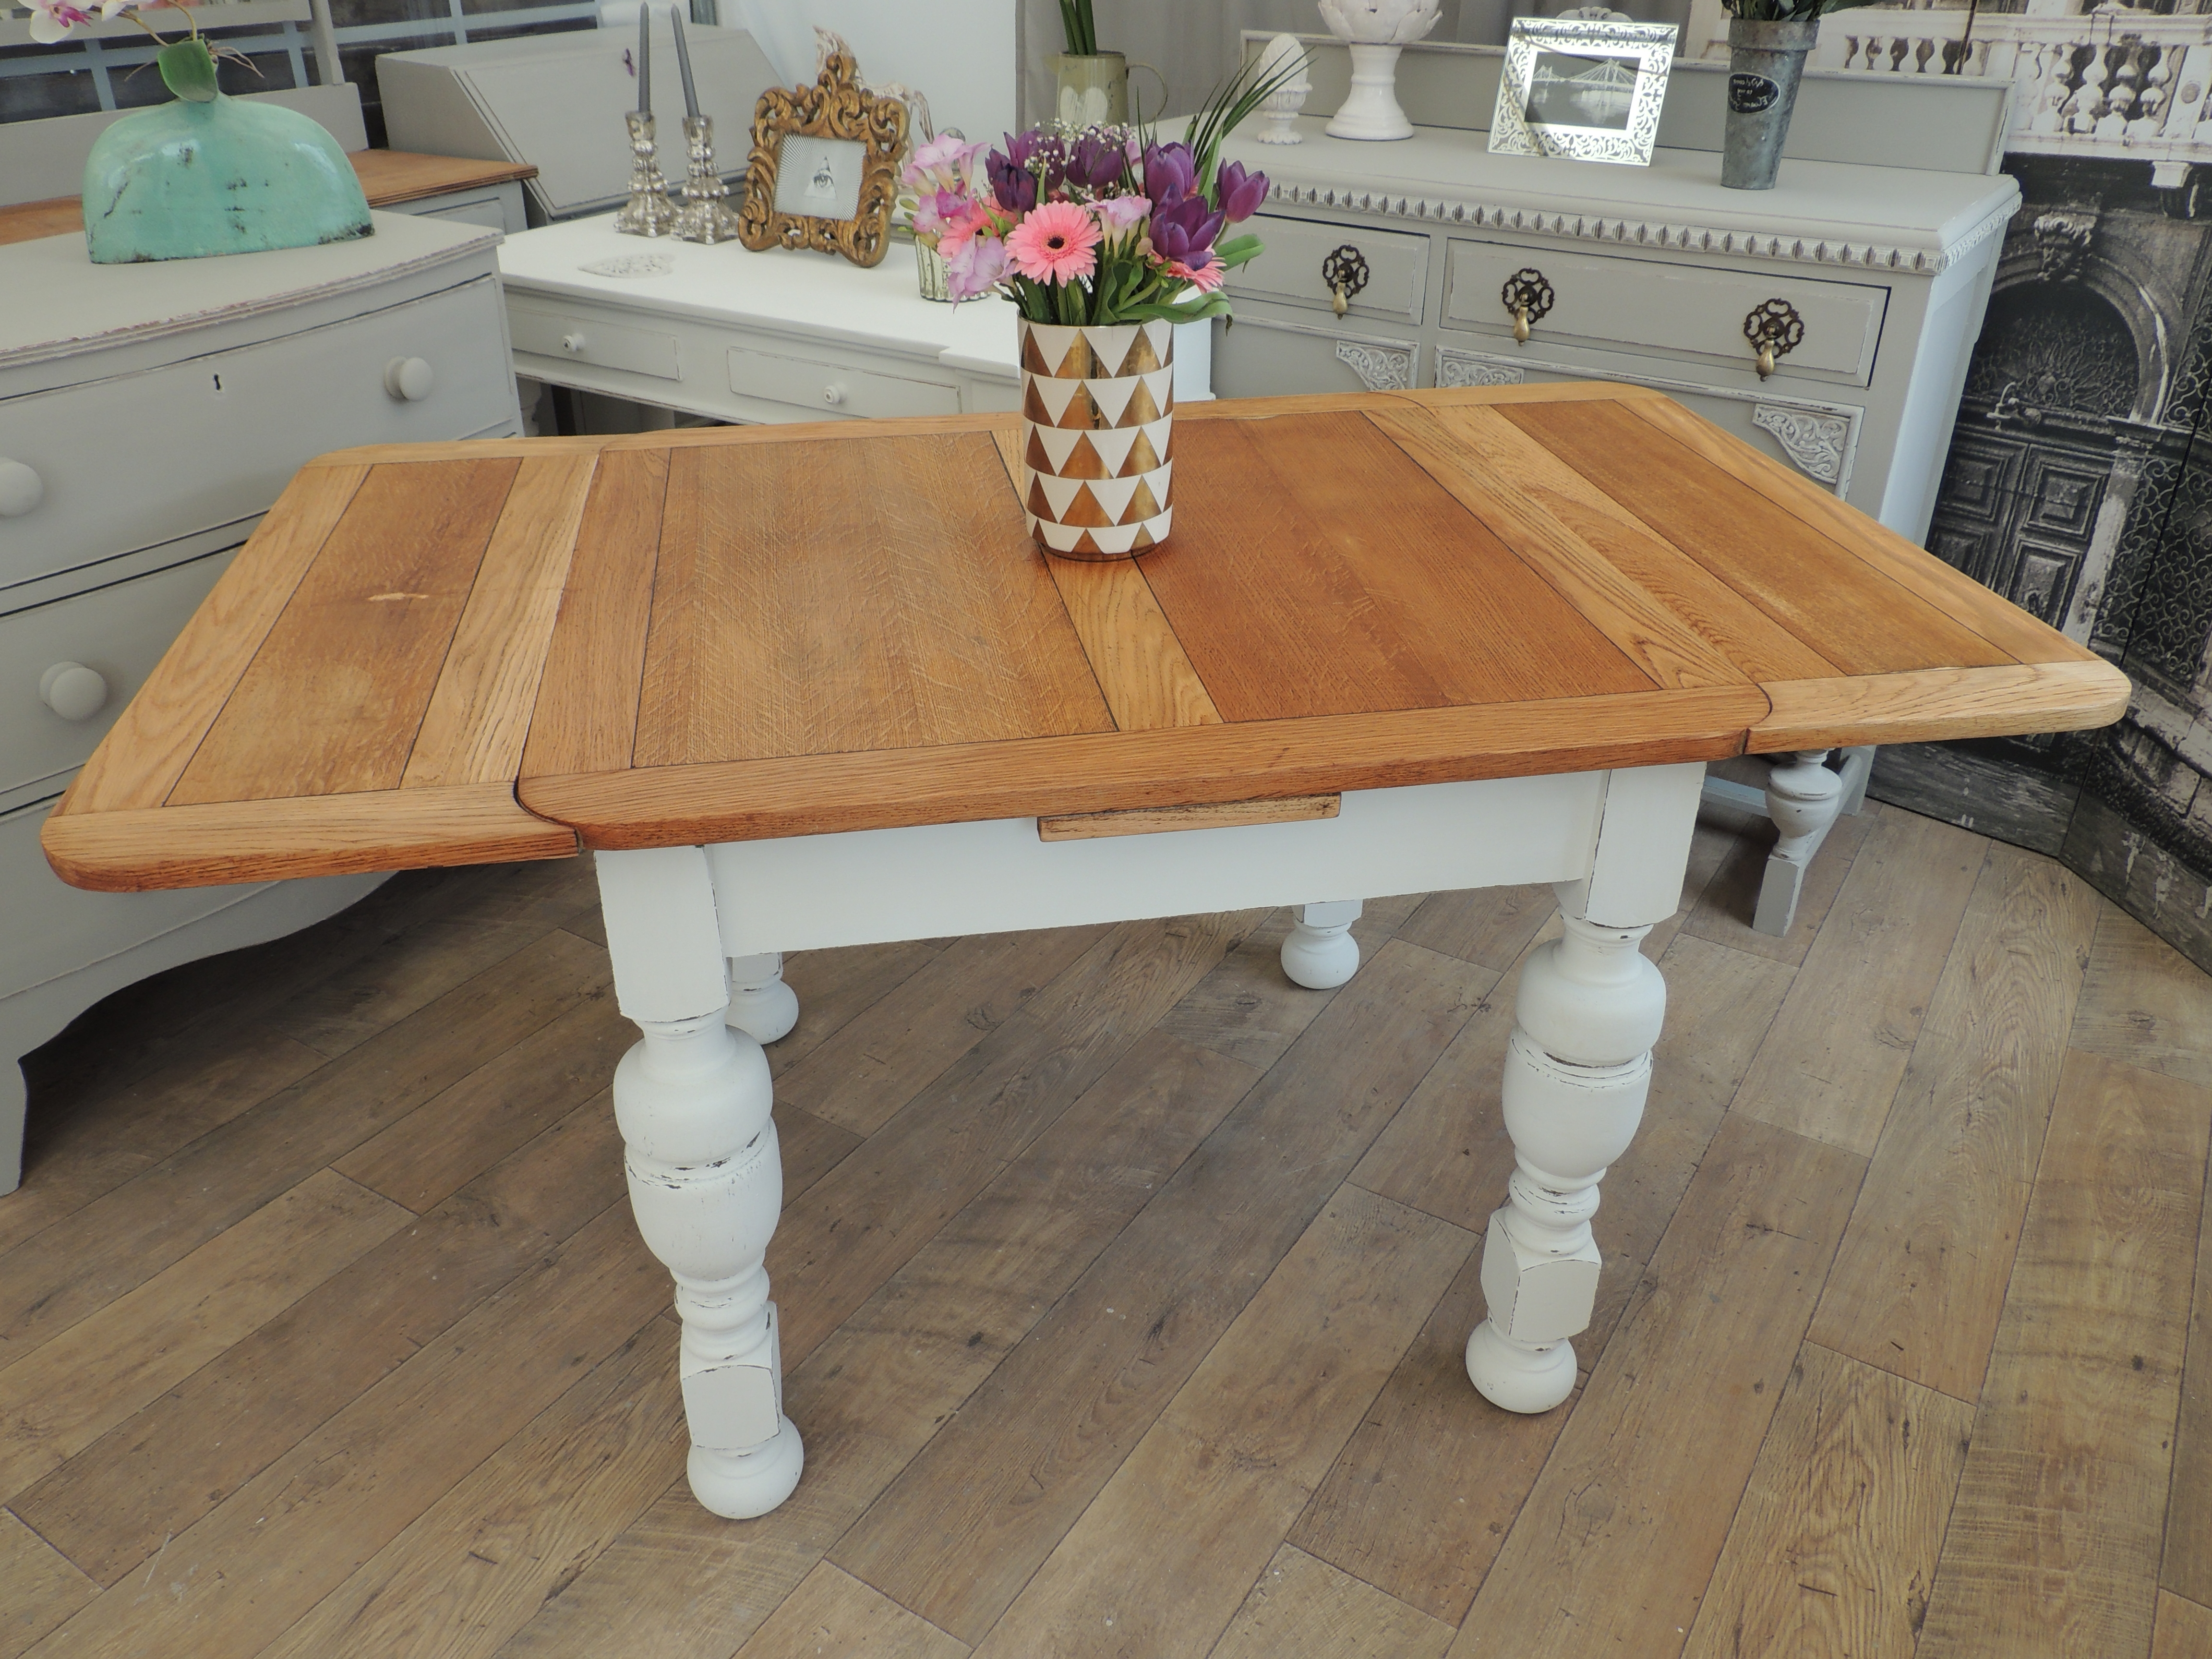 Most Popular Shabby Chic Oak Extendable Dining Table – Eclectivo London Regarding Shabby Chic Extendable Dining Tables (View 17 of 25)